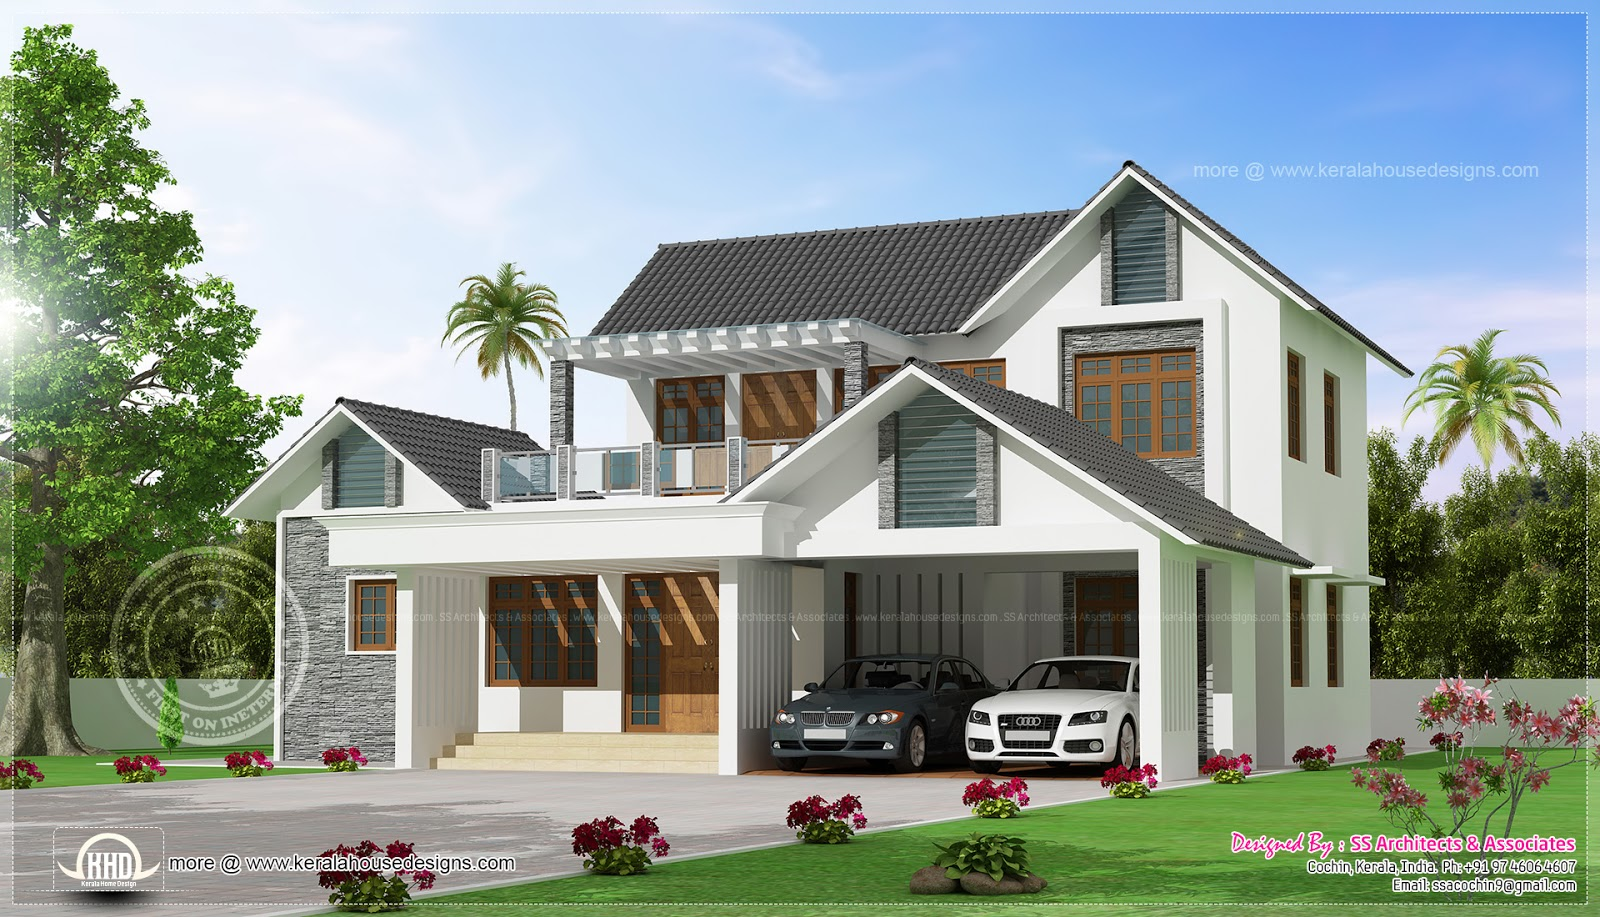 Awesome modern villa exterior elevation kerala home for Kerala home style 3 bedroom